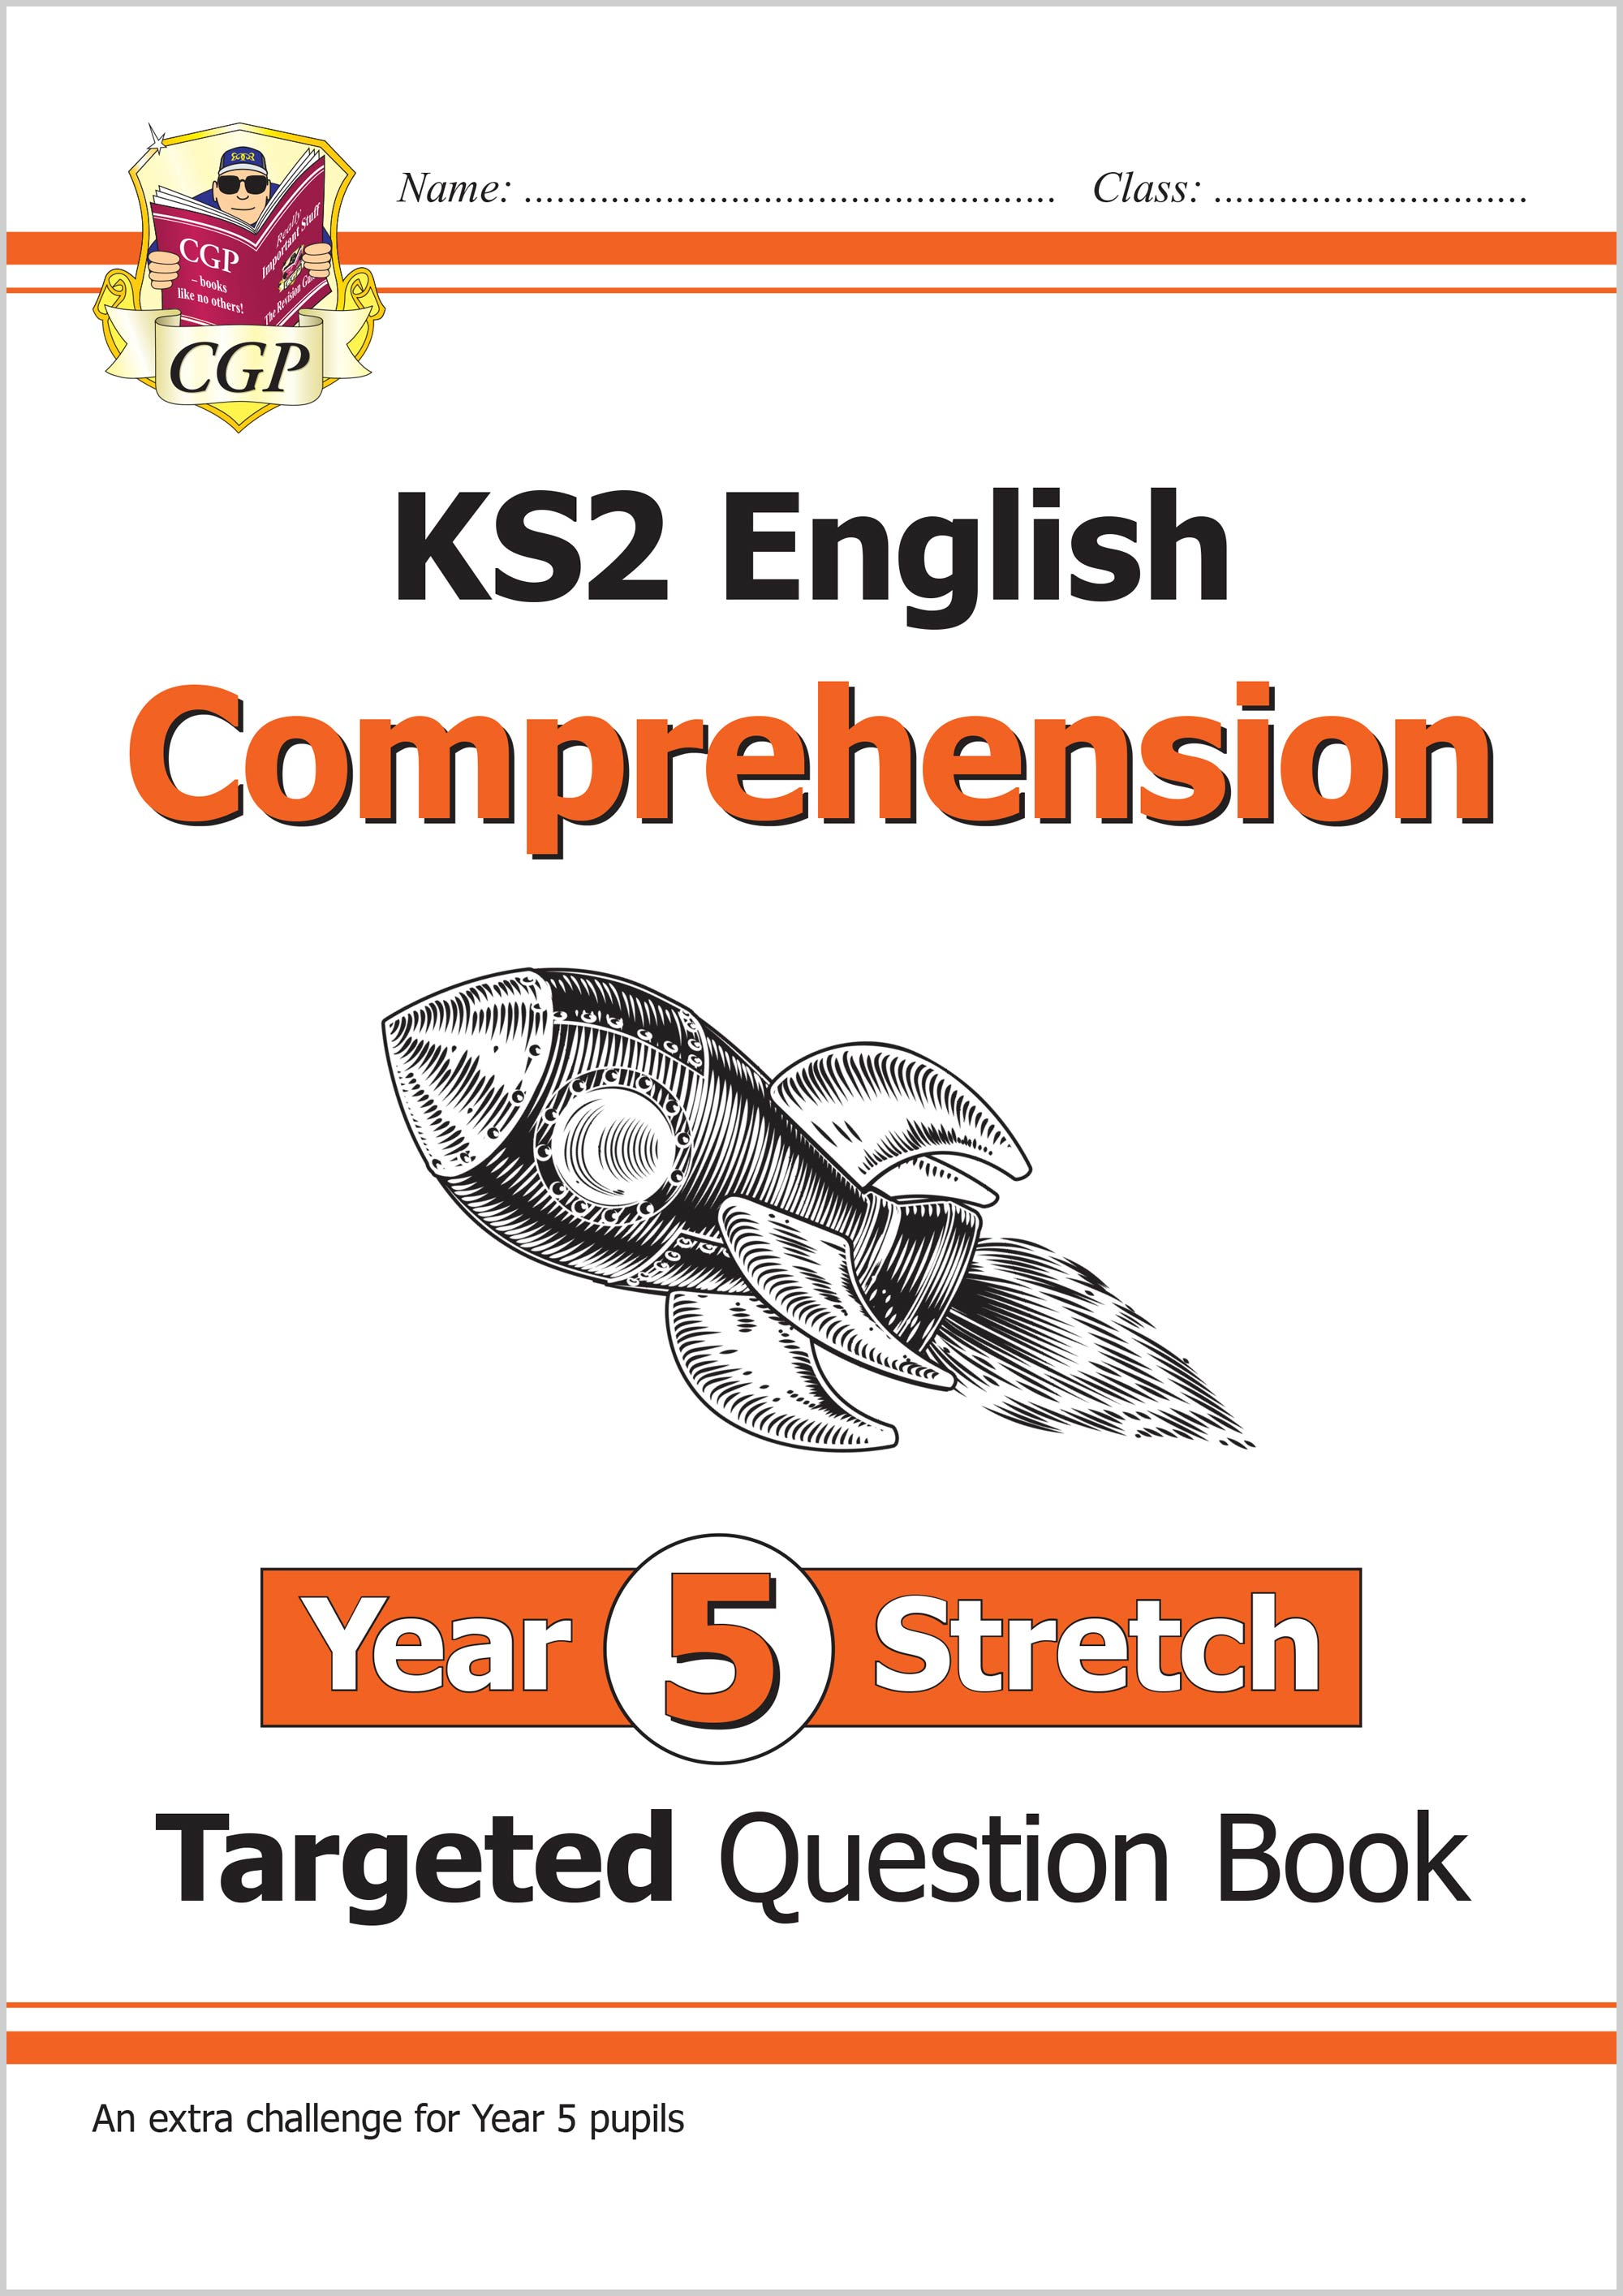 E5HCW21 - KS2 English Targeted Question Book: Challenging Comprehension - Year 5 Stretch (with Answe